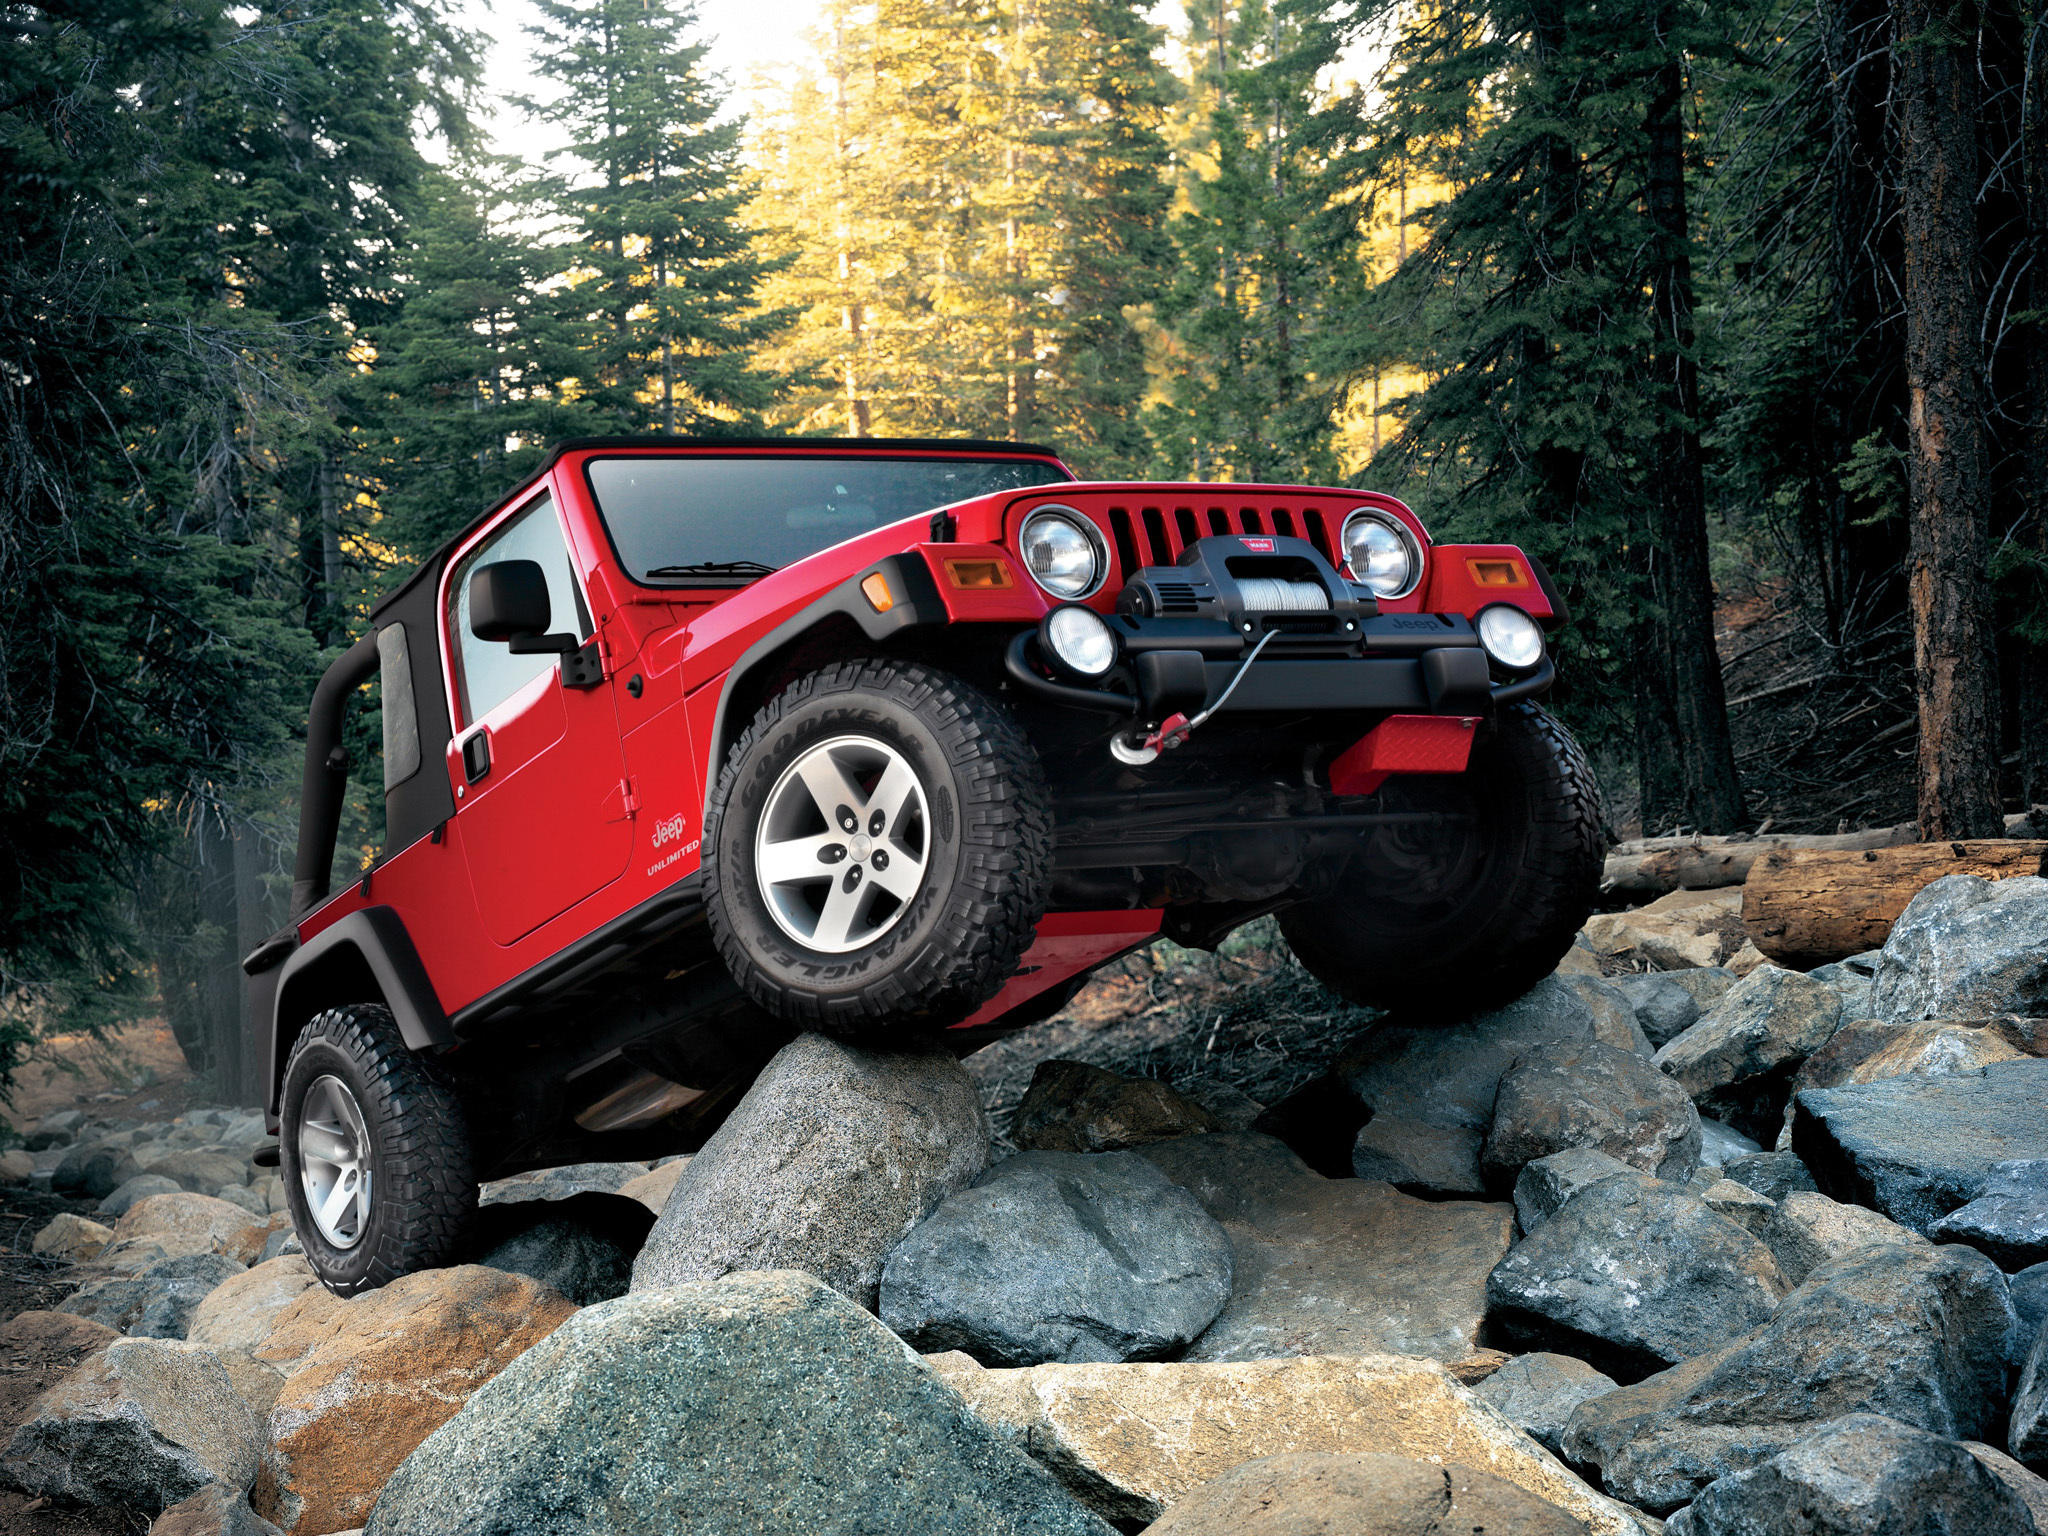 337 jeep hd wallpapers | background images - wallpaper abyss